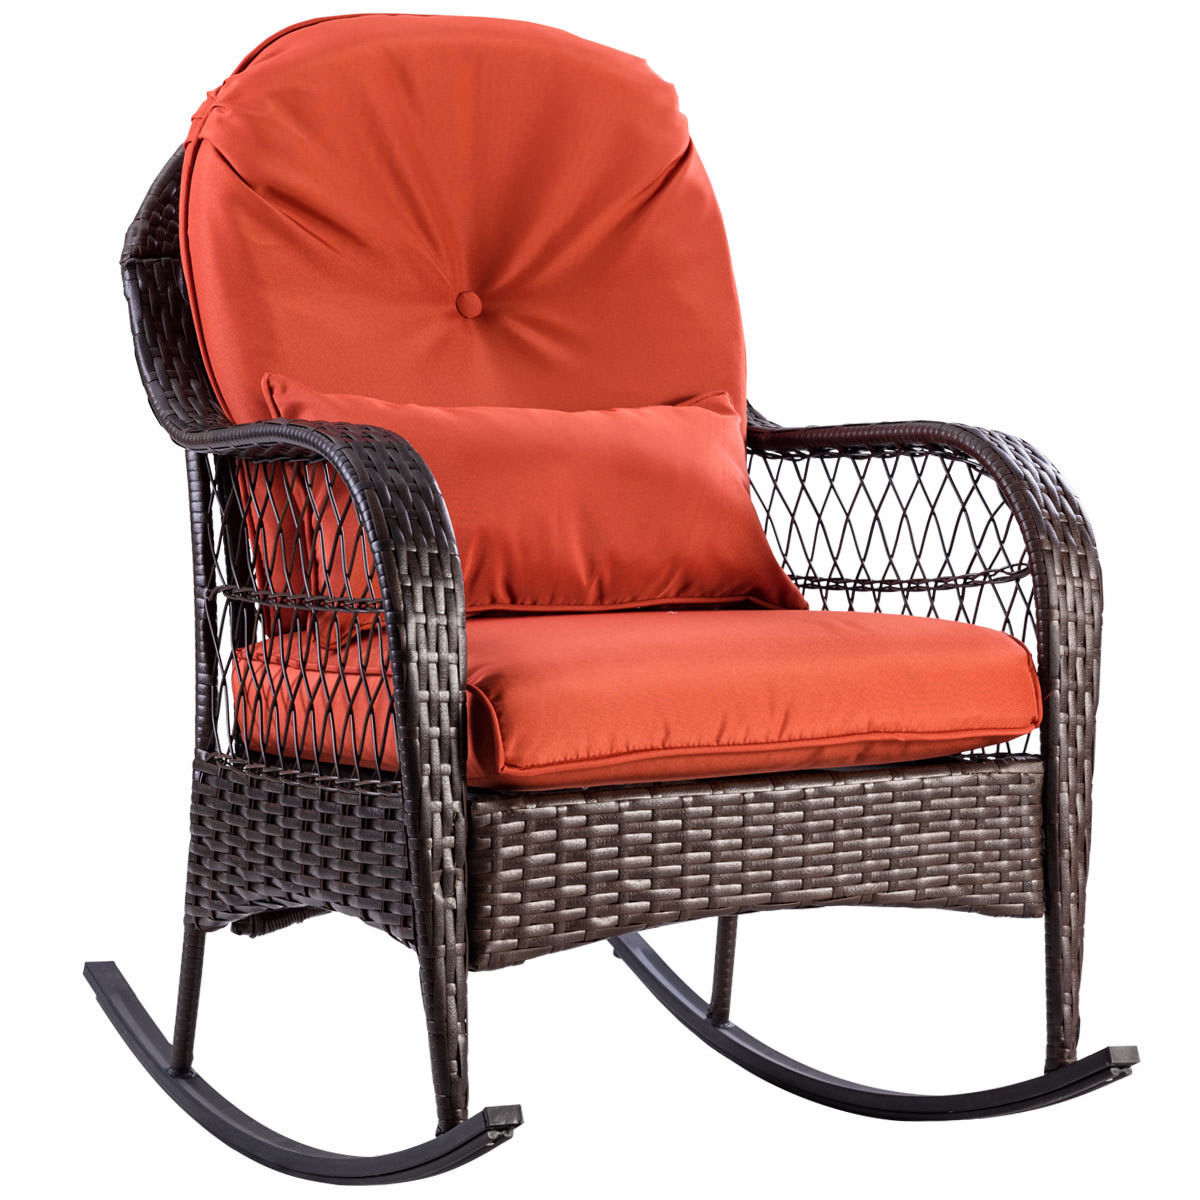 Costway Outdoor Wicker Rocking Chair Porch Deck Rocker Patio Furniture w/ Cushion